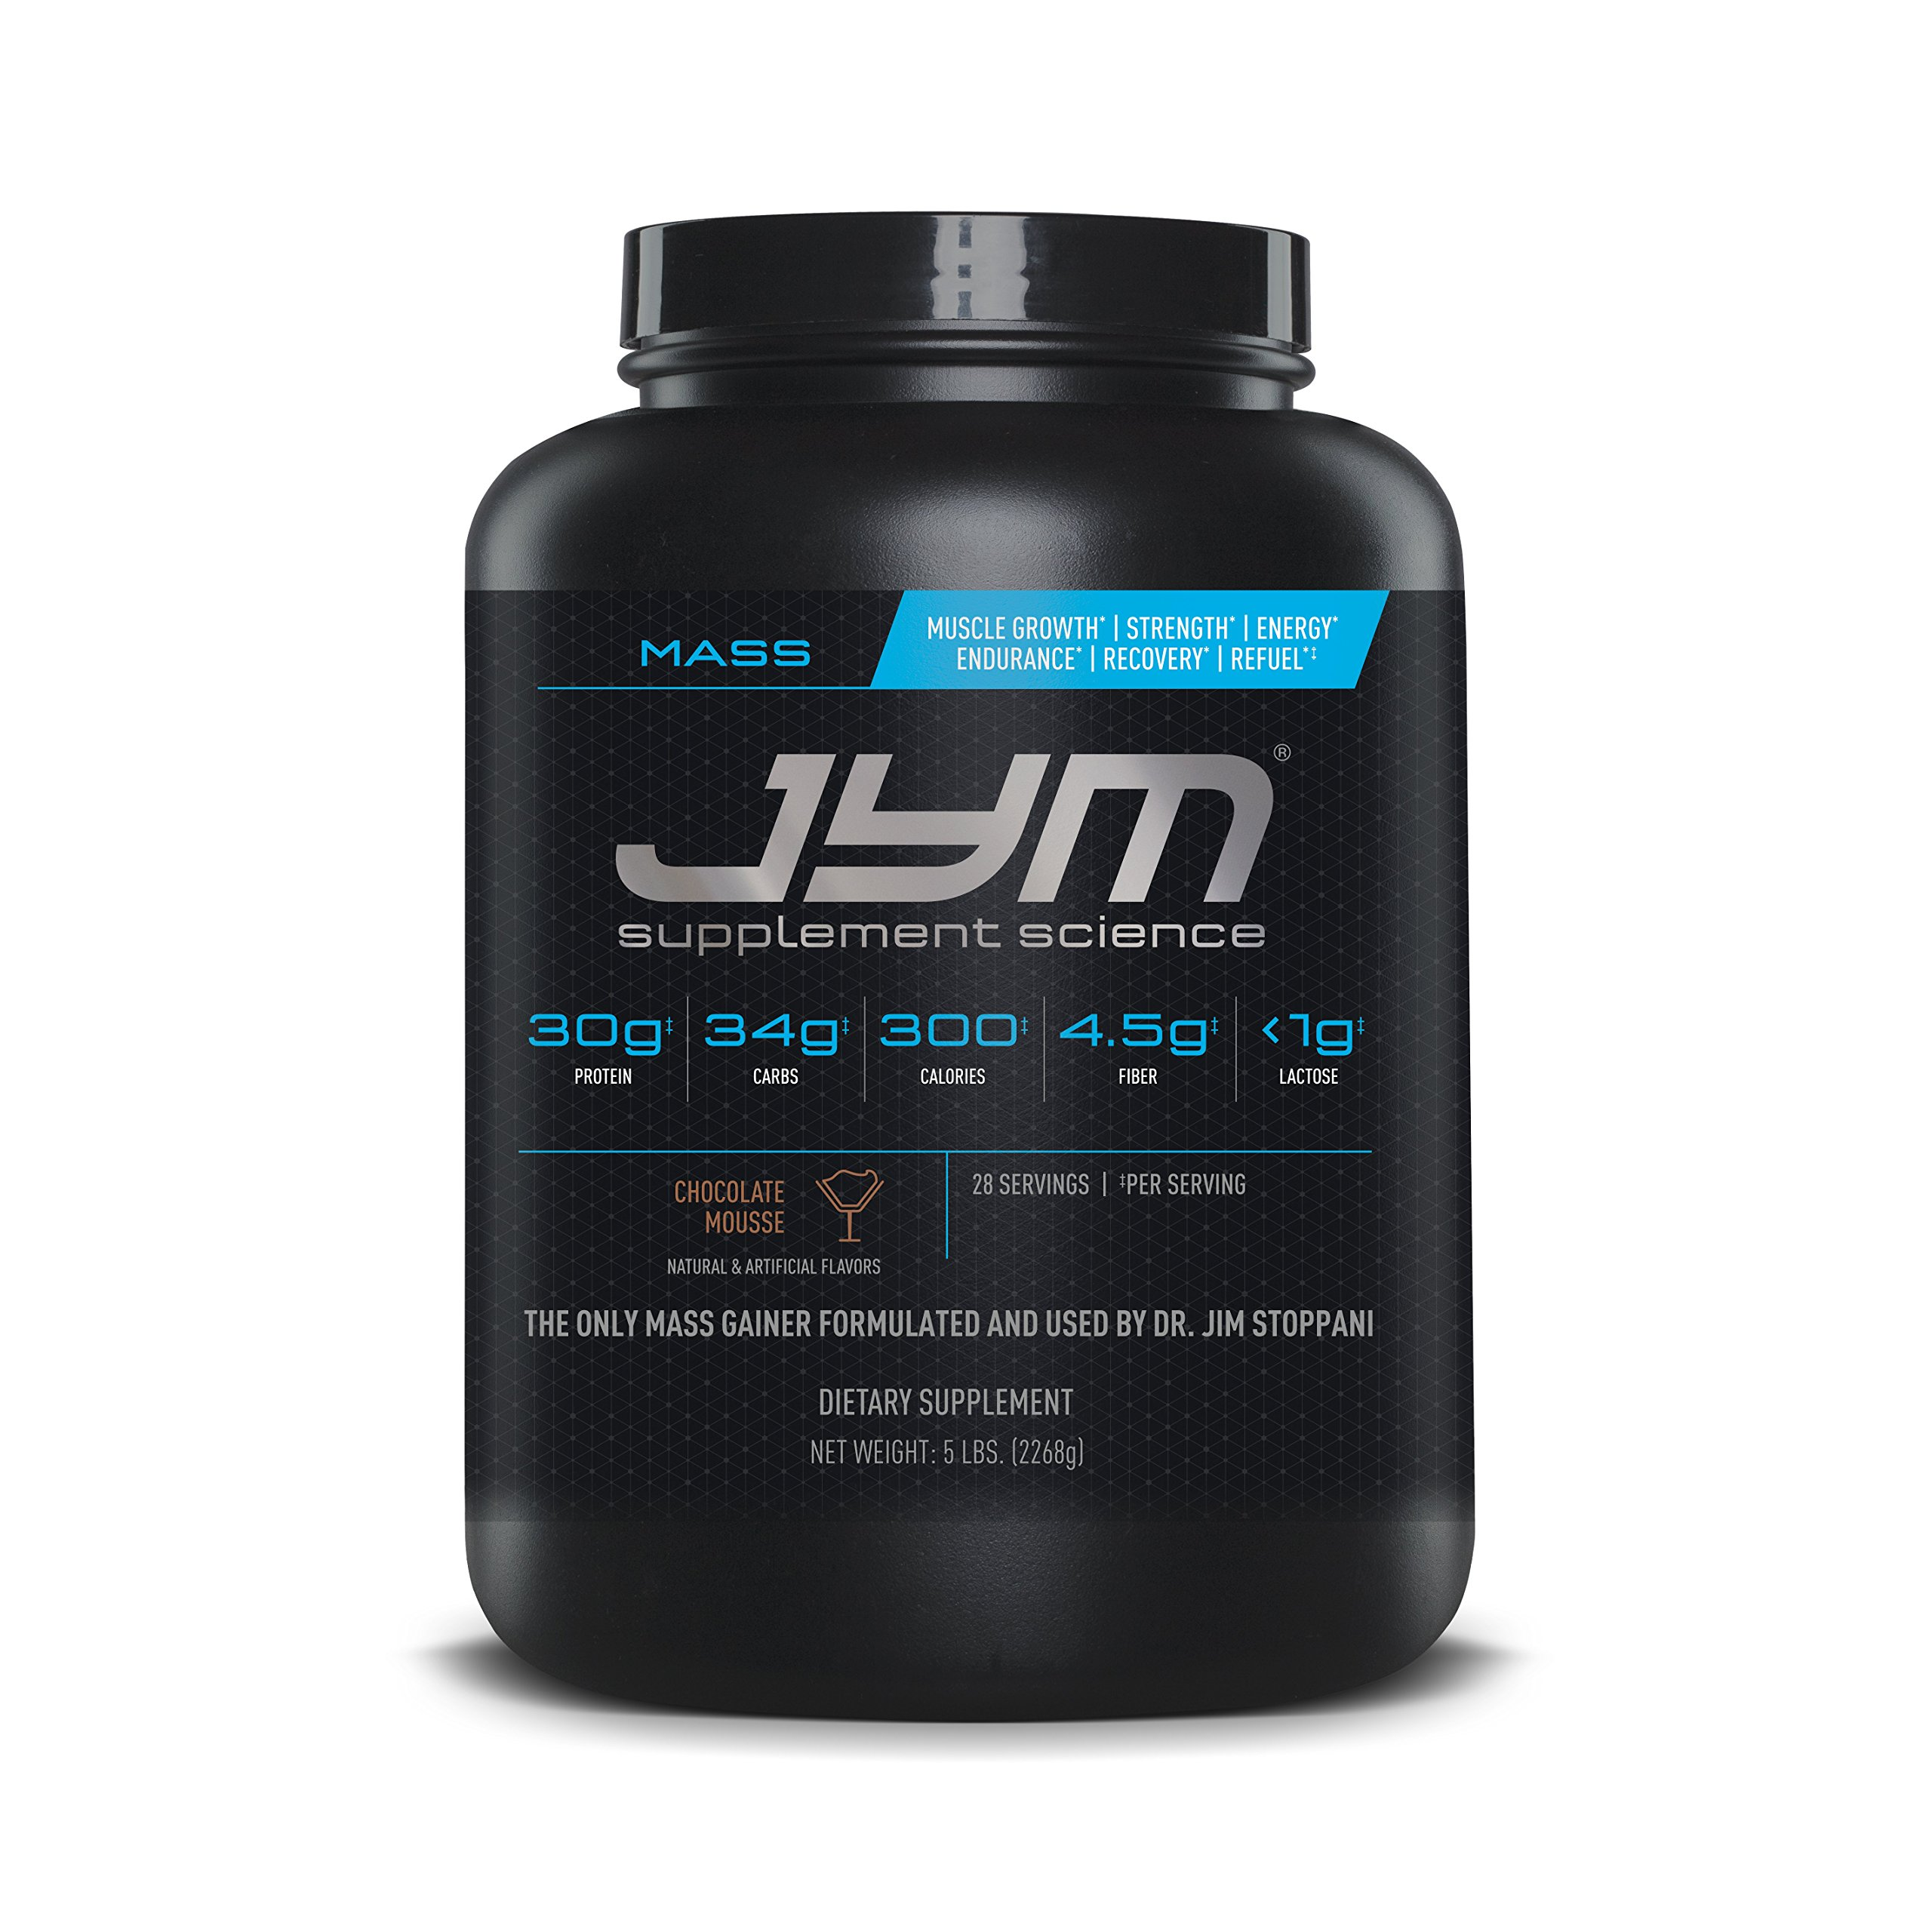 JYM Supplement Science Mass Chocolate Mousse, 5 Pound